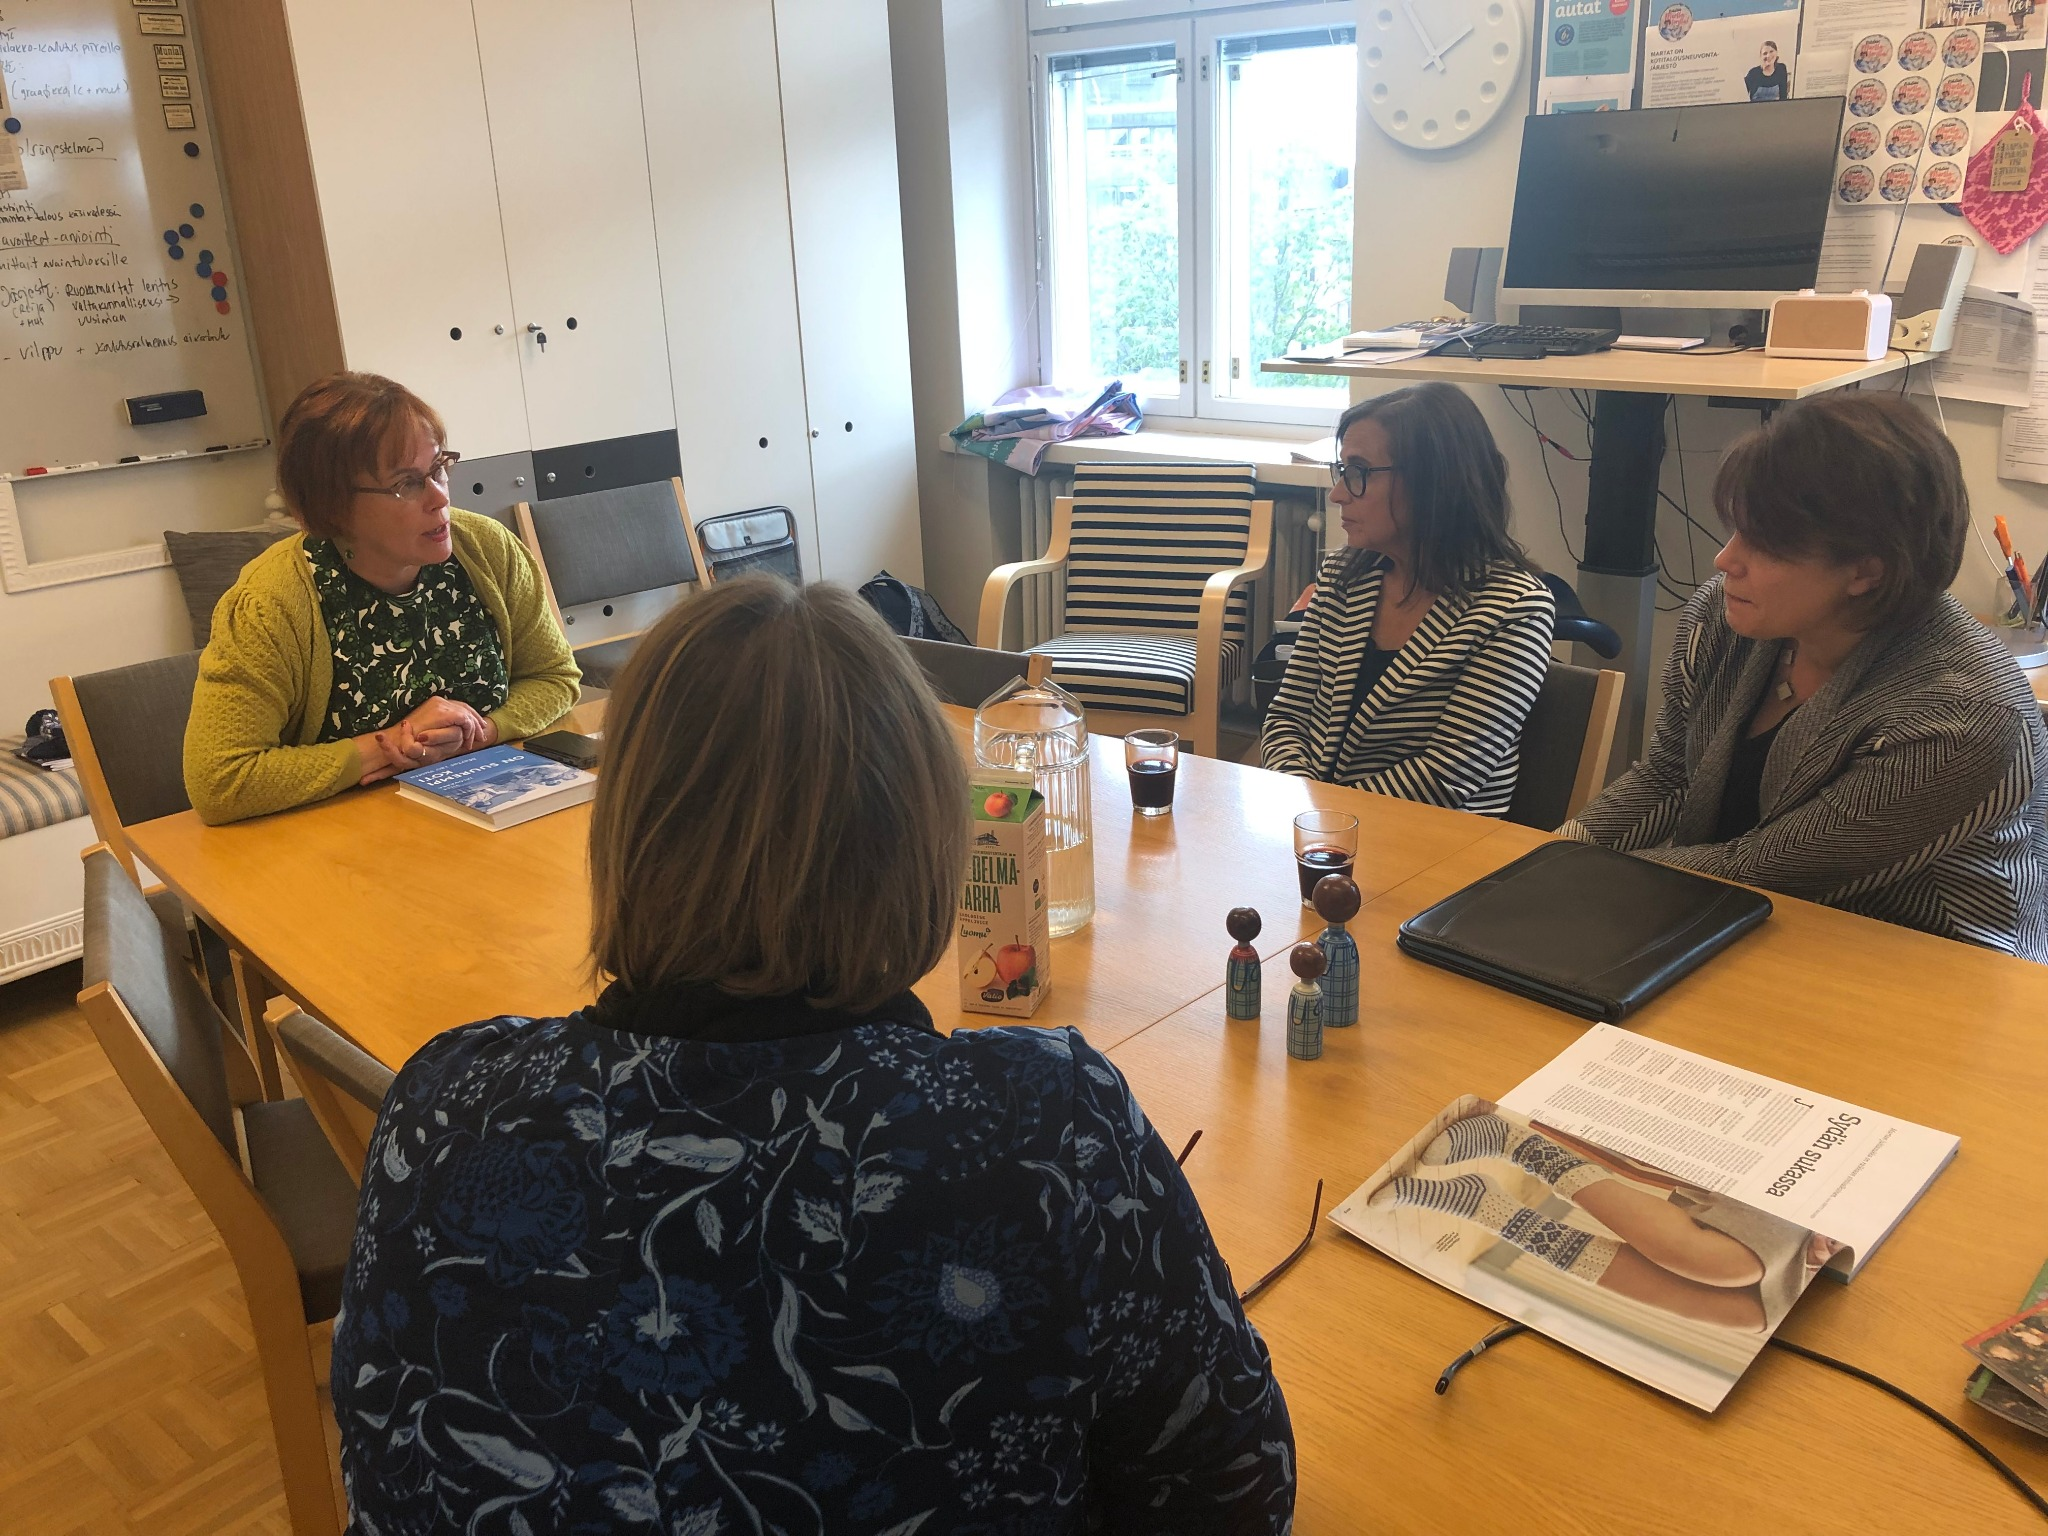 Sister Sharon Eubank, who oversees the Church's global humanitarian efforts, and local Relief Society presidents meet with Terhi Lindqvist of Martat (the Martha Association) in Helsinki, Finland, Friday, September 20, 2019.